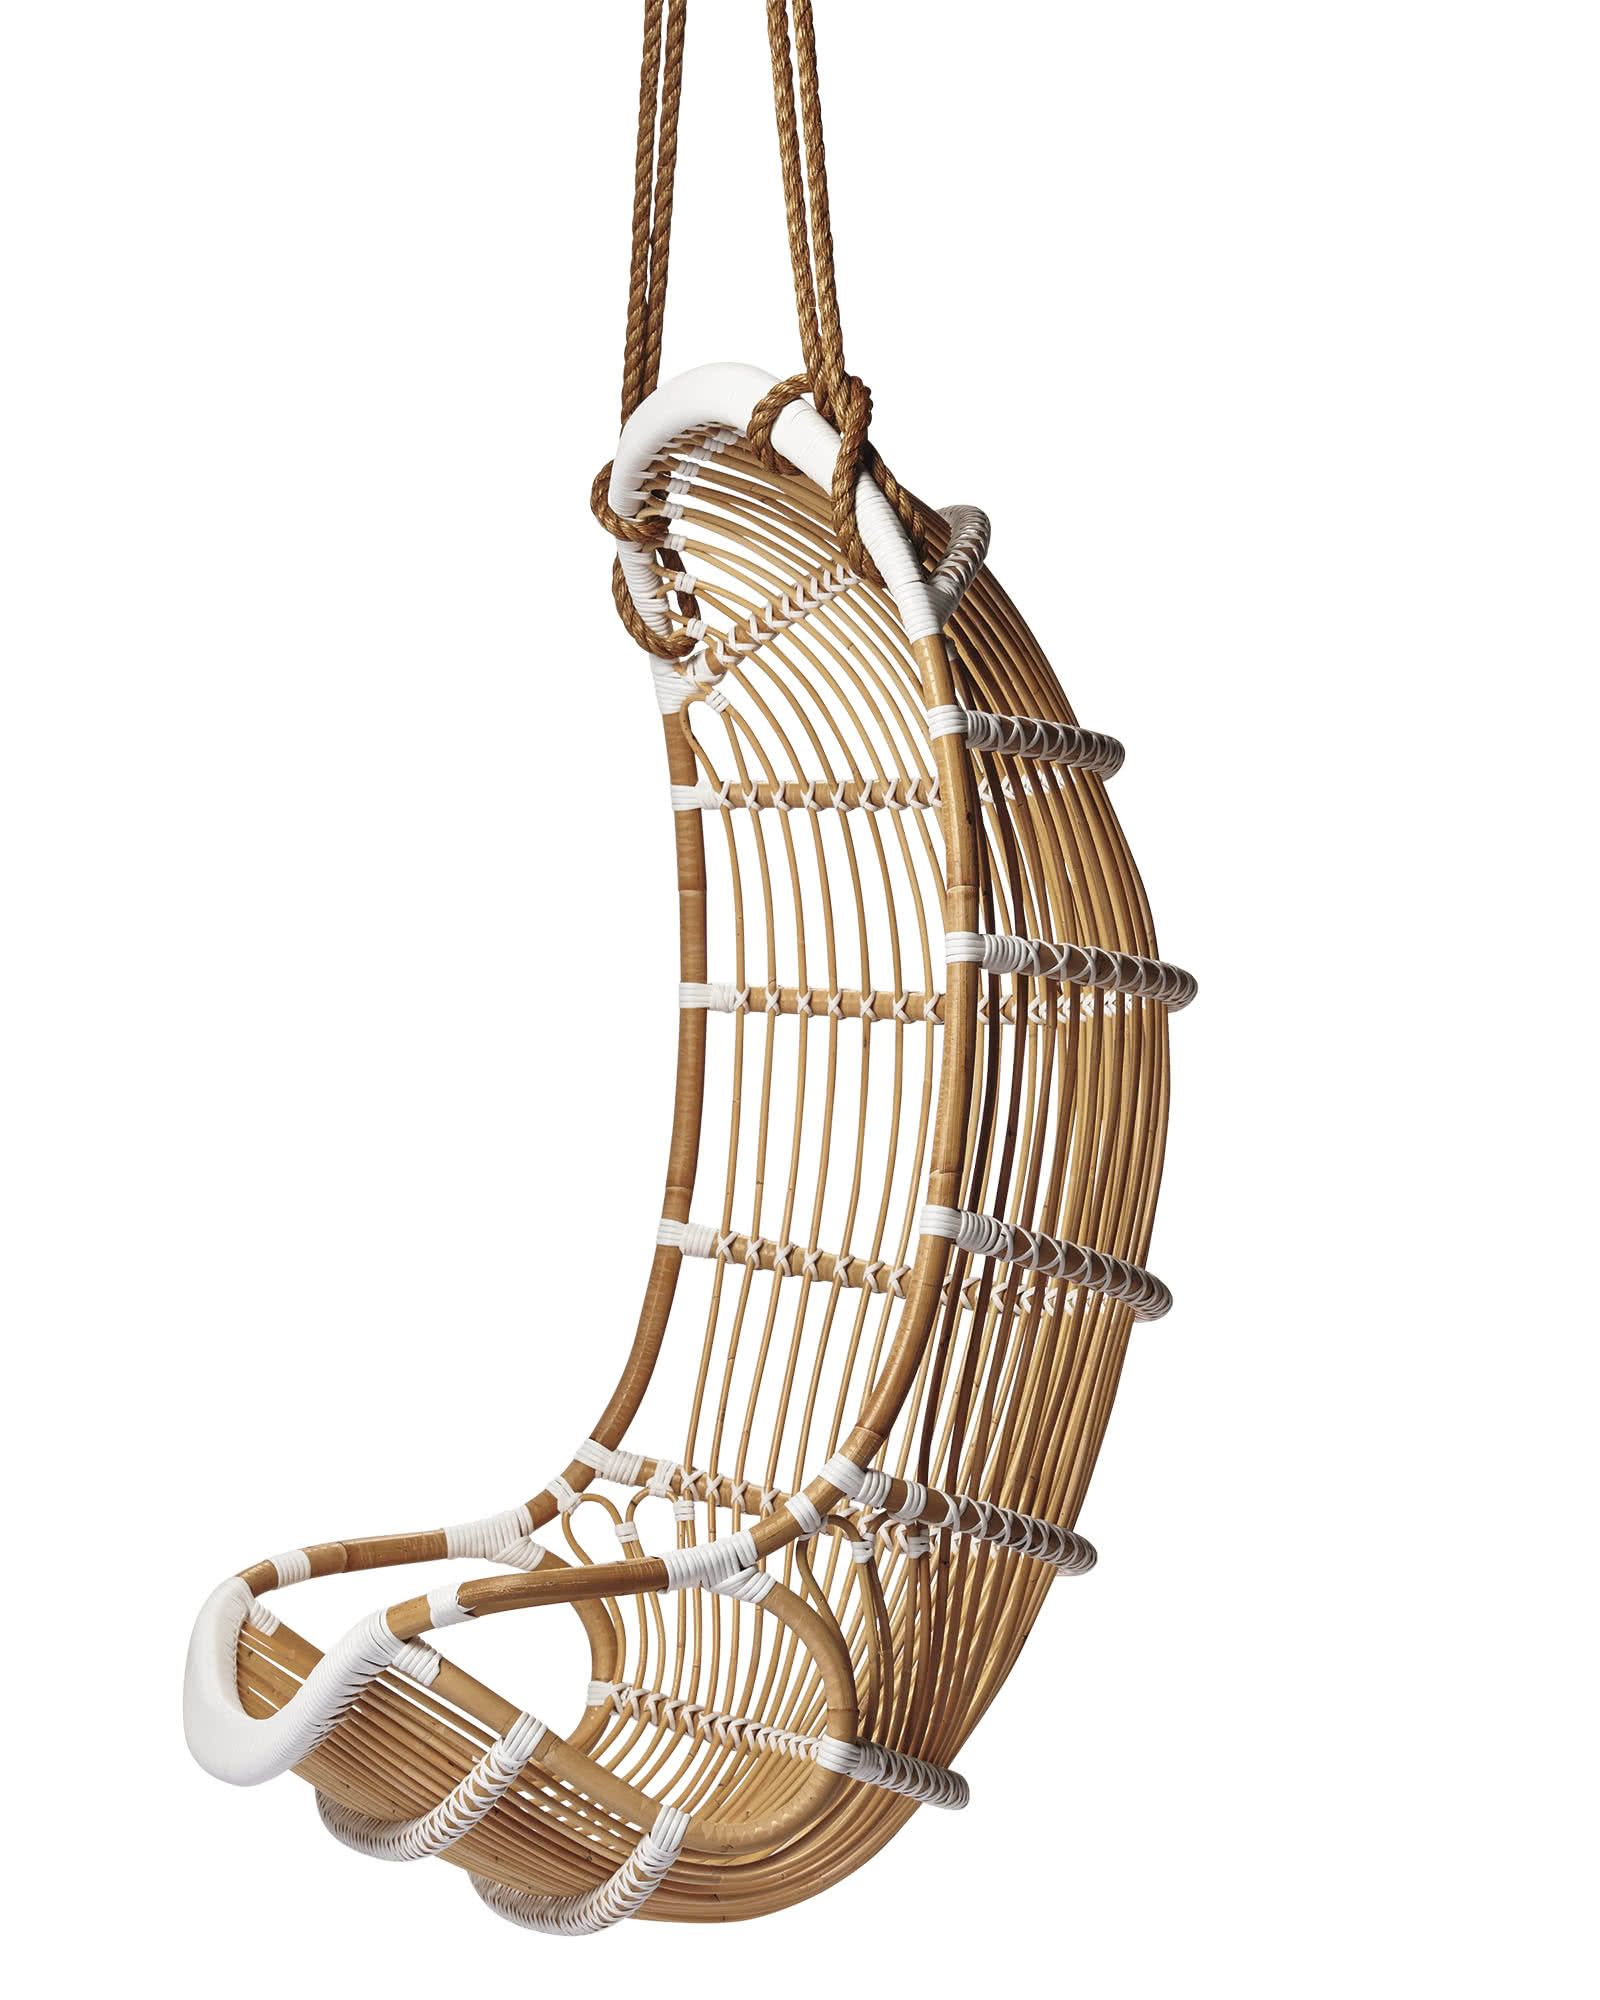 Double hanging rattan chair in 2021 hanging rattan chair